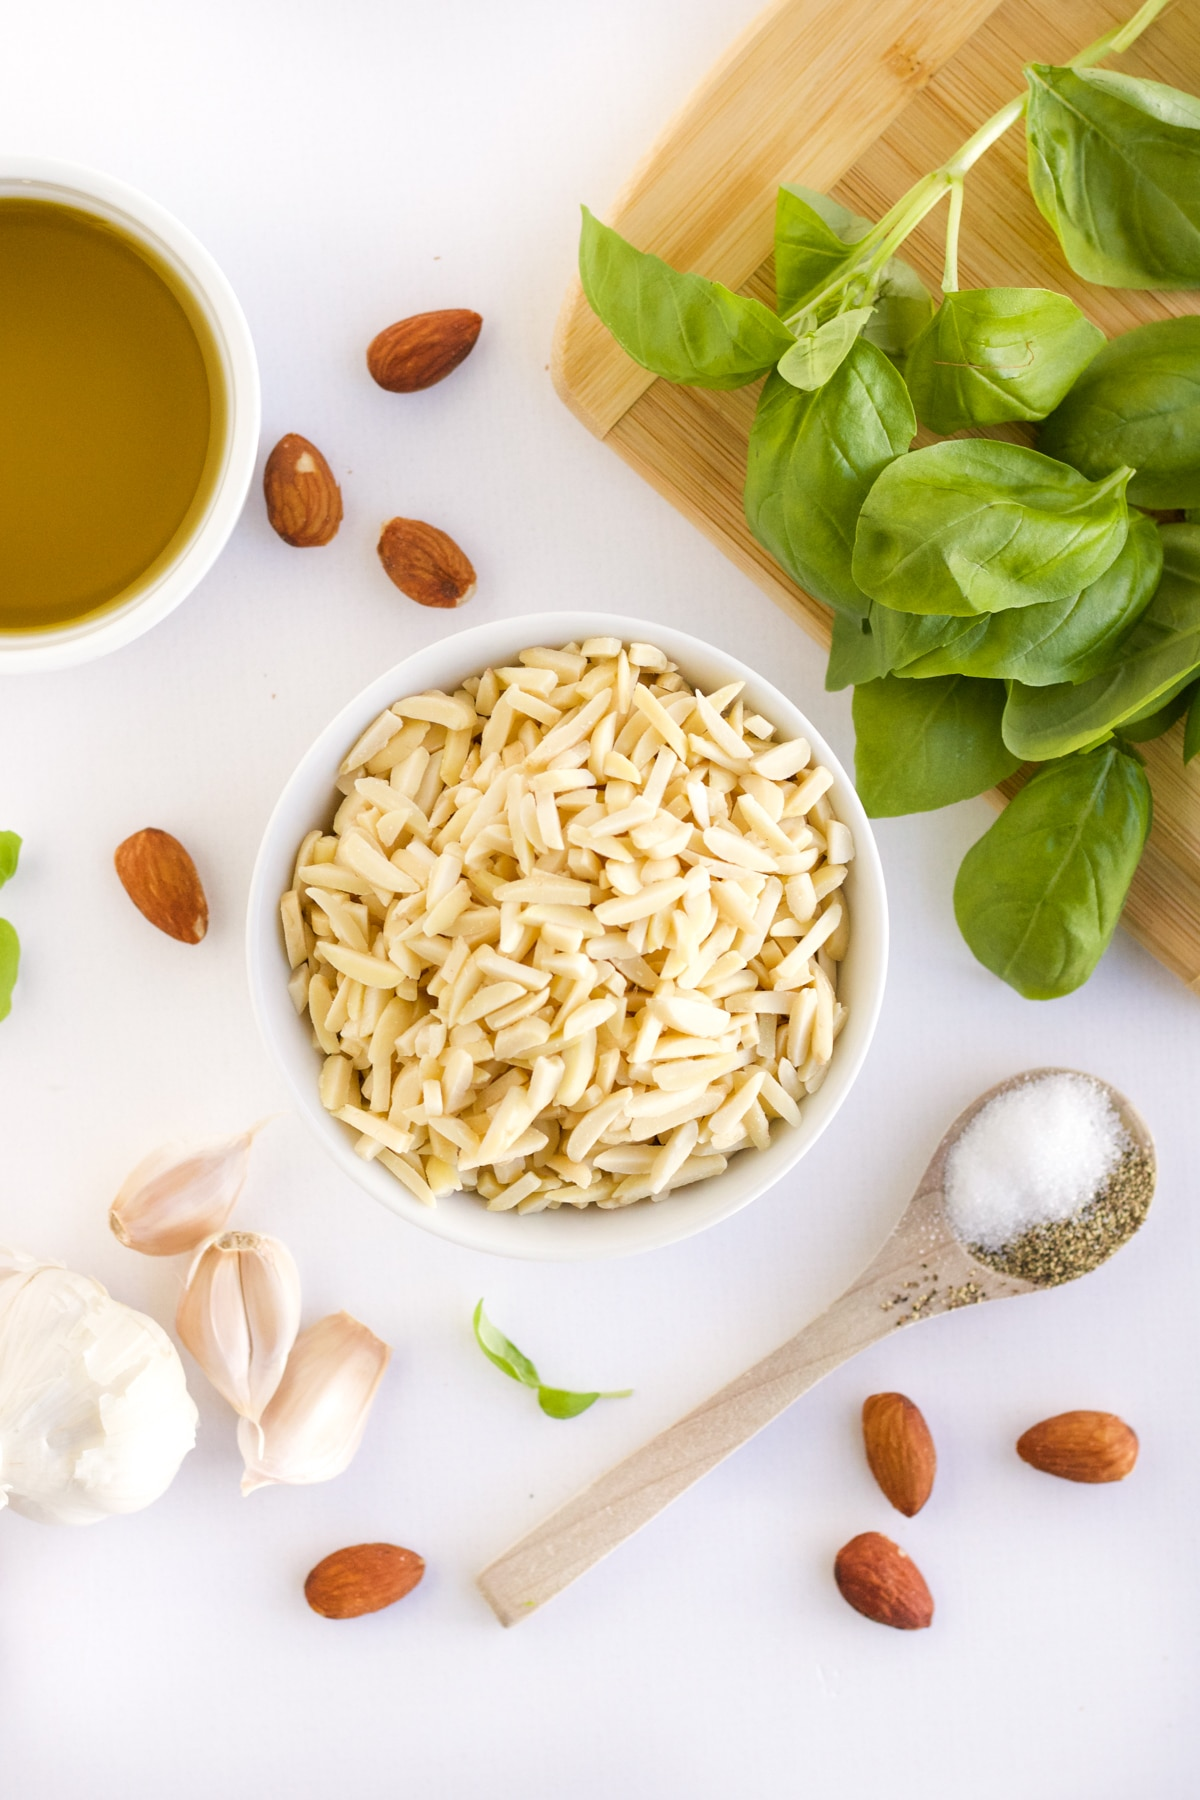 Ingredients for homemade almond pesto - slivered almonds, olive oil, fresh basil, garlic and salt and pepper